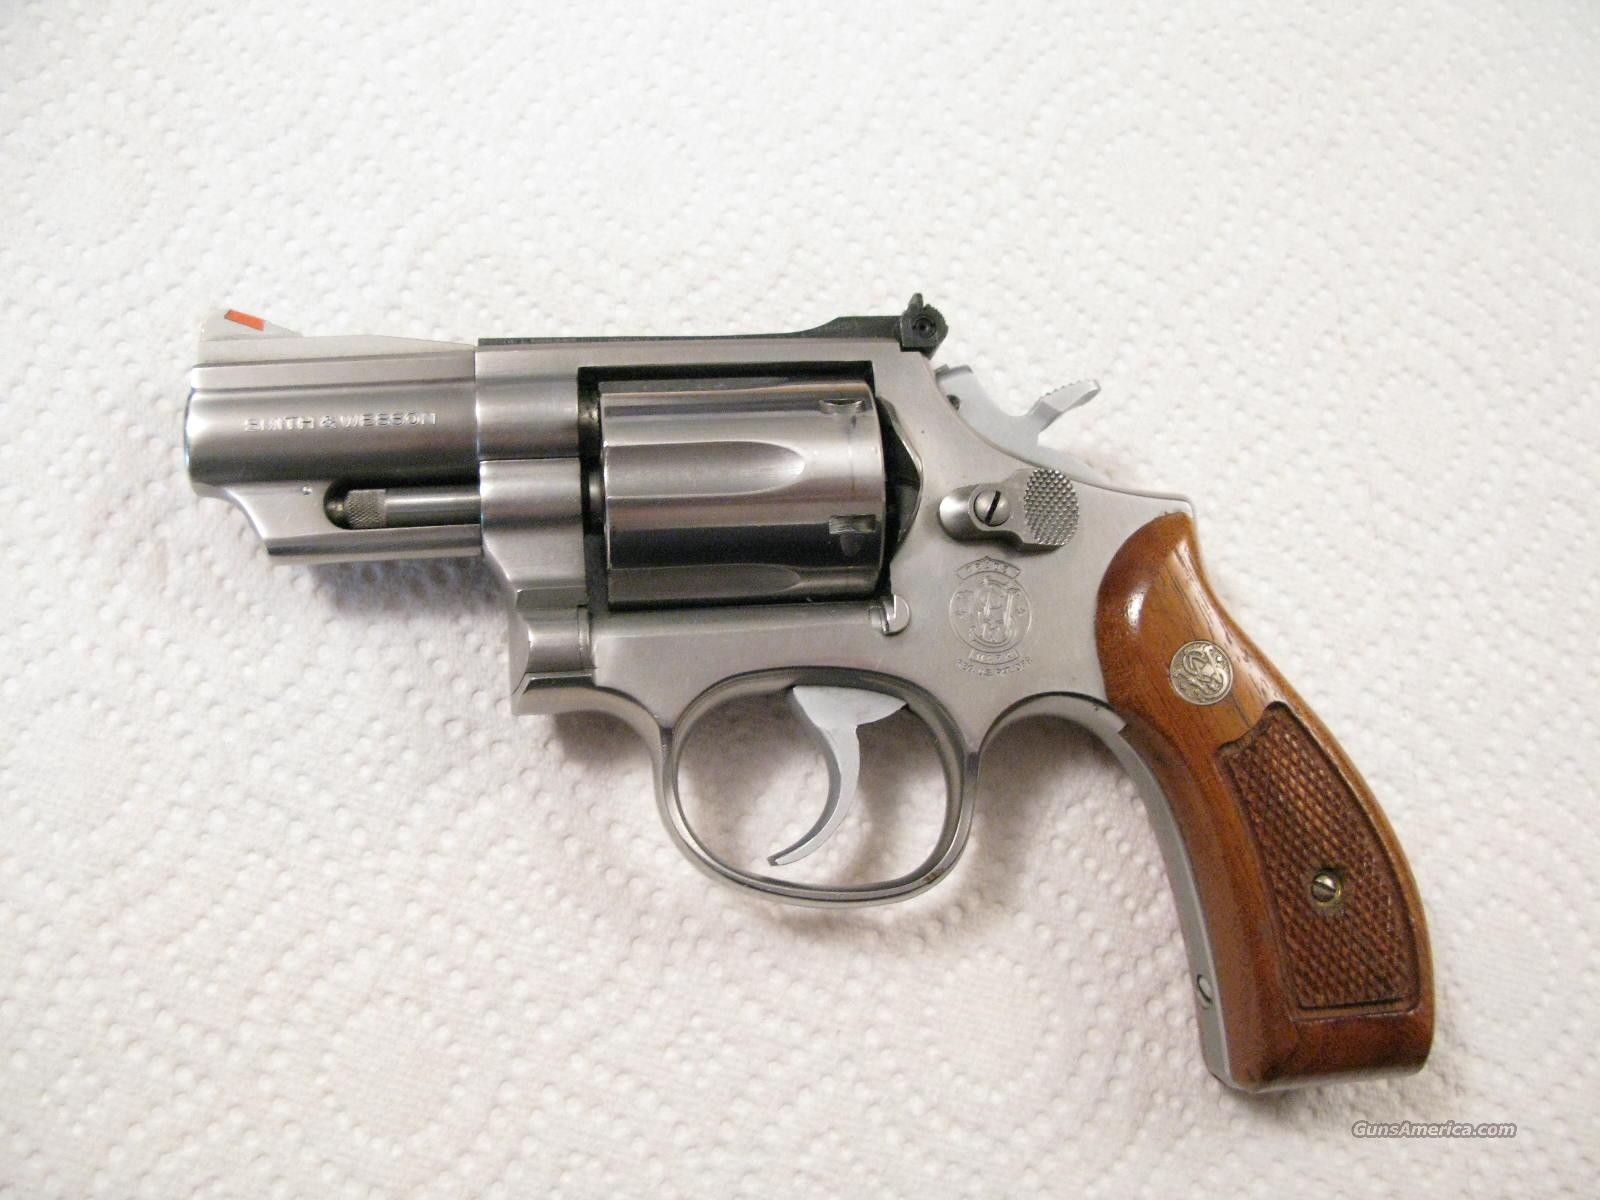 "M-66 2 1/2"" .357 Combat Magnum Stainless Steel Red Ramp   Guns > Pistols > Smith & Wesson Revolvers > Full Frame Revolver"